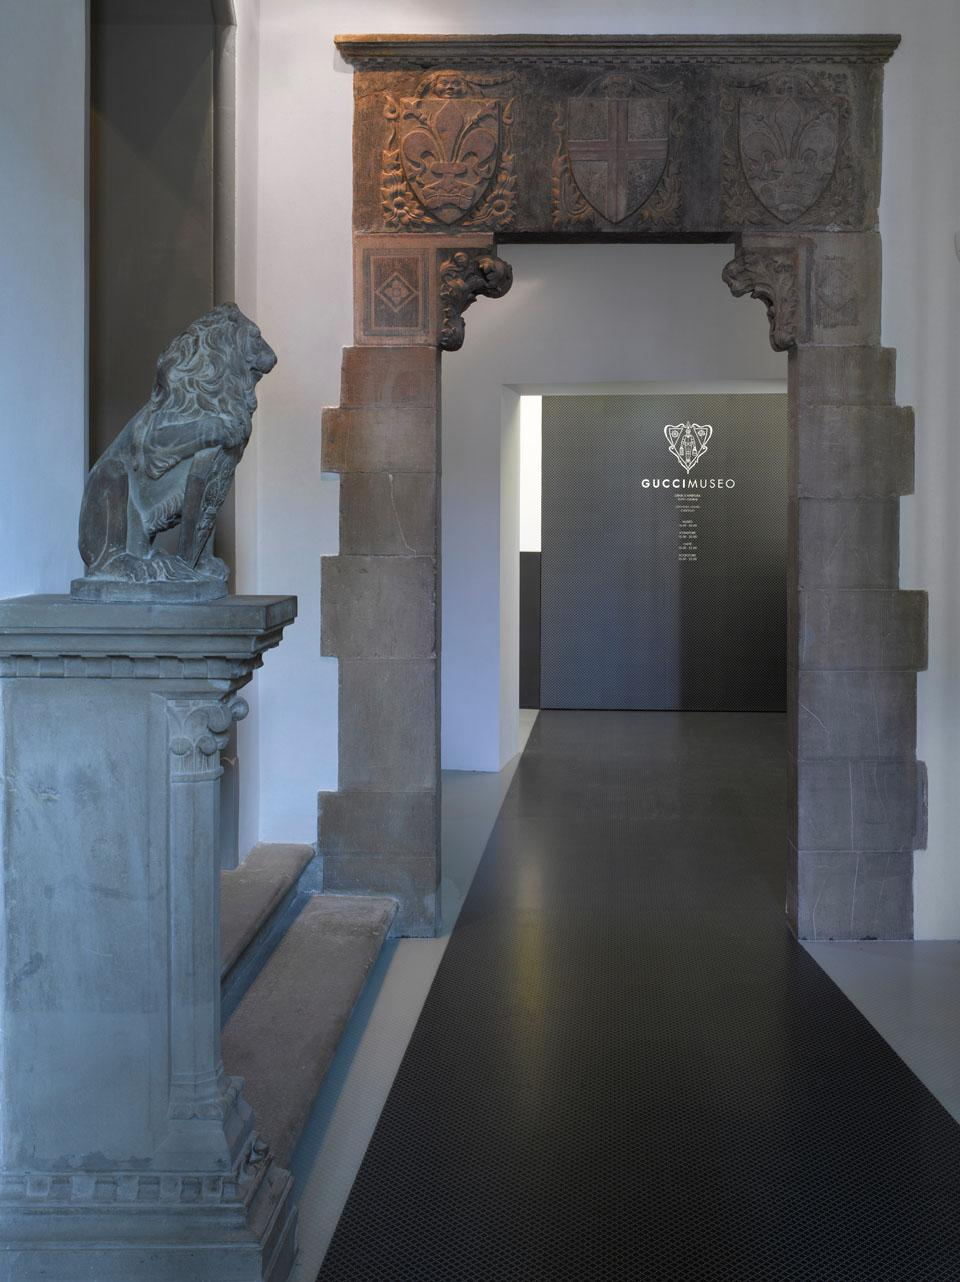 Entrance to the Gucci Museum. Photo courtesy of Richard Bryant & GUCCI.